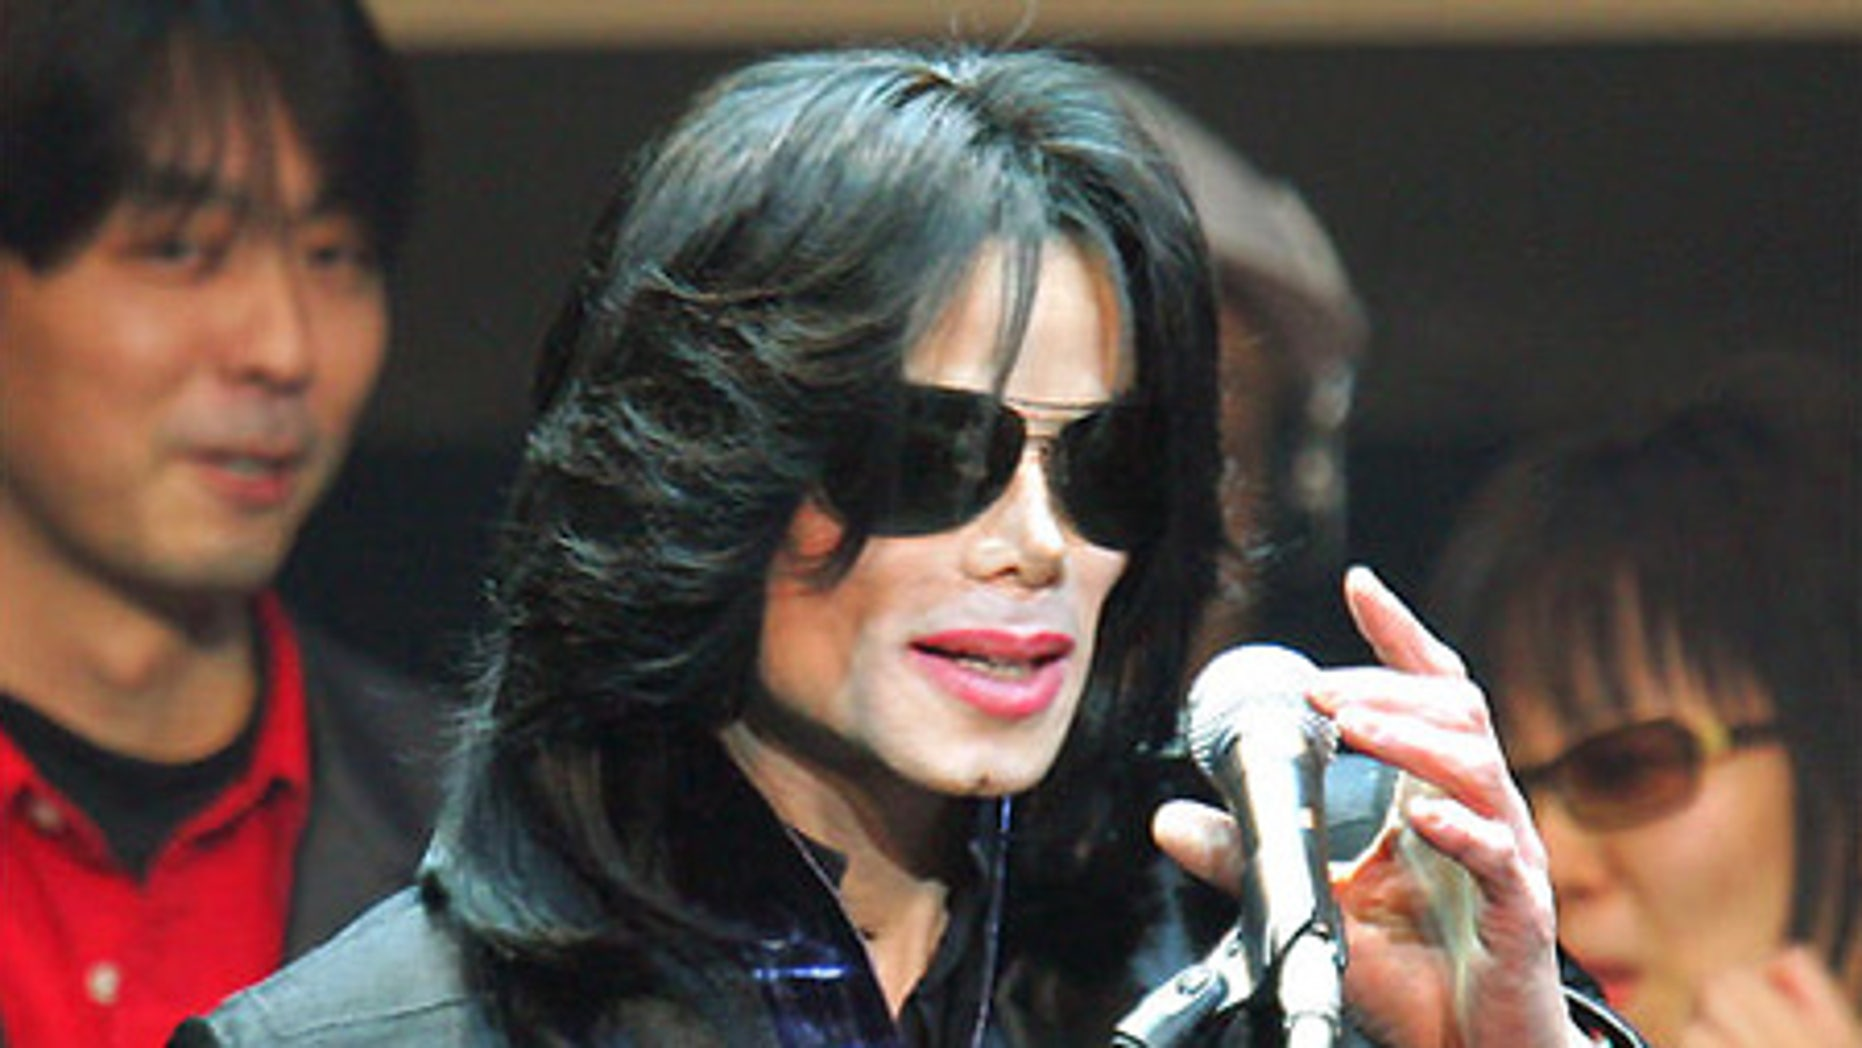 """March 9, 2007: Michael Jackson delivers a speech to fans during an event called """"Fan Appreciation Day"""" in Tokyo."""